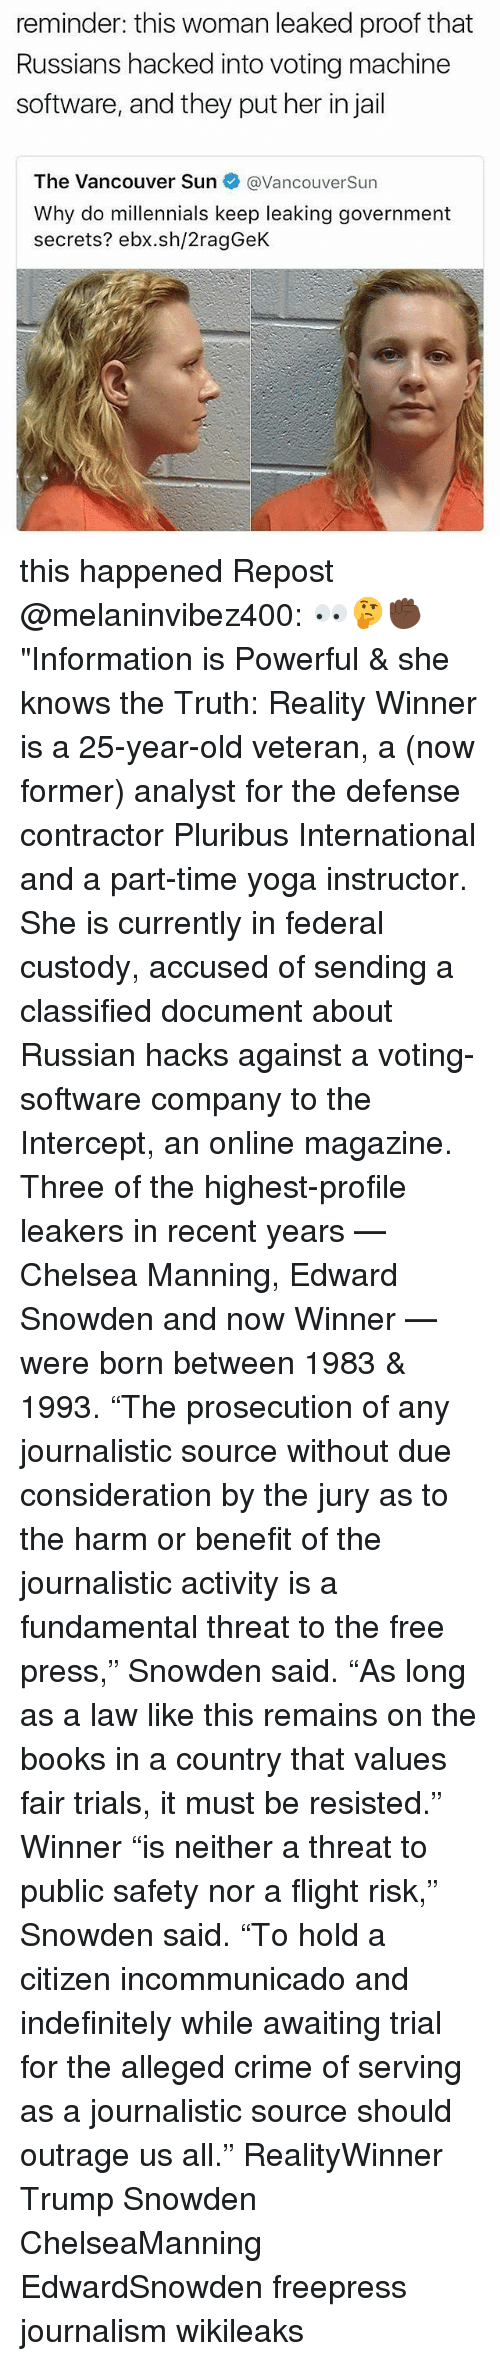 """Proofs: reminder: this woman leaked proof that  Russians hacked into voting machine  software, and they put her in jail  The Vancouver Sun  @VancouverSun  Why do millennials keep leaking government  secrets? ebx.sh/2ragGeK this happened Repost @melaninvibez400: 👀🤔✊🏿""""Information is Powerful & she knows the Truth: Reality Winner is a 25-year-old veteran, a (now former) analyst for the defense contractor Pluribus International and a part-time yoga instructor. She is currently in federal custody, accused of sending a classified document about Russian hacks against a voting-software company to the Intercept, an online magazine. Three of the highest-profile leakers in recent years — Chelsea Manning, Edward Snowden and now Winner — were born between 1983 & 1993. """"The prosecution of any journalistic source without due consideration by the jury as to the harm or benefit of the journalistic activity is a fundamental threat to the free press,"""" Snowden said. """"As long as a law like this remains on the books in a country that values fair trials, it must be resisted."""" Winner """"is neither a threat to public safety nor a flight risk,"""" Snowden said. """"To hold a citizen incommunicado and indefinitely while awaiting trial for the alleged crime of serving as a journalistic source should outrage us all."""" RealityWinner Trump Snowden ChelseaManning EdwardSnowden freepress journalism wikileaks"""